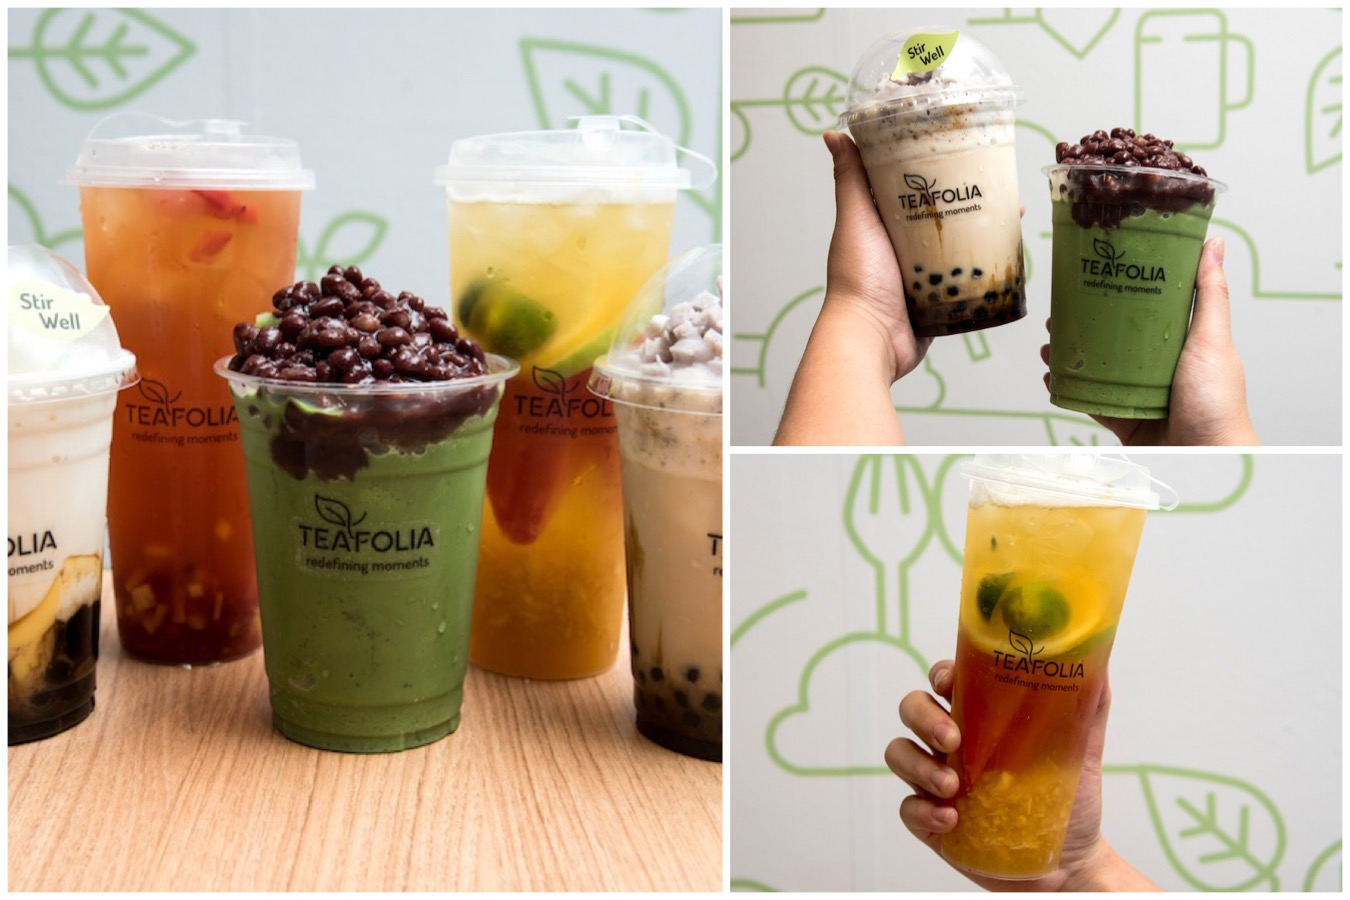 Teafolia - Booming Trend Of Fruit Tea Kiosks In Singapore. Really Healthier And Tastier?